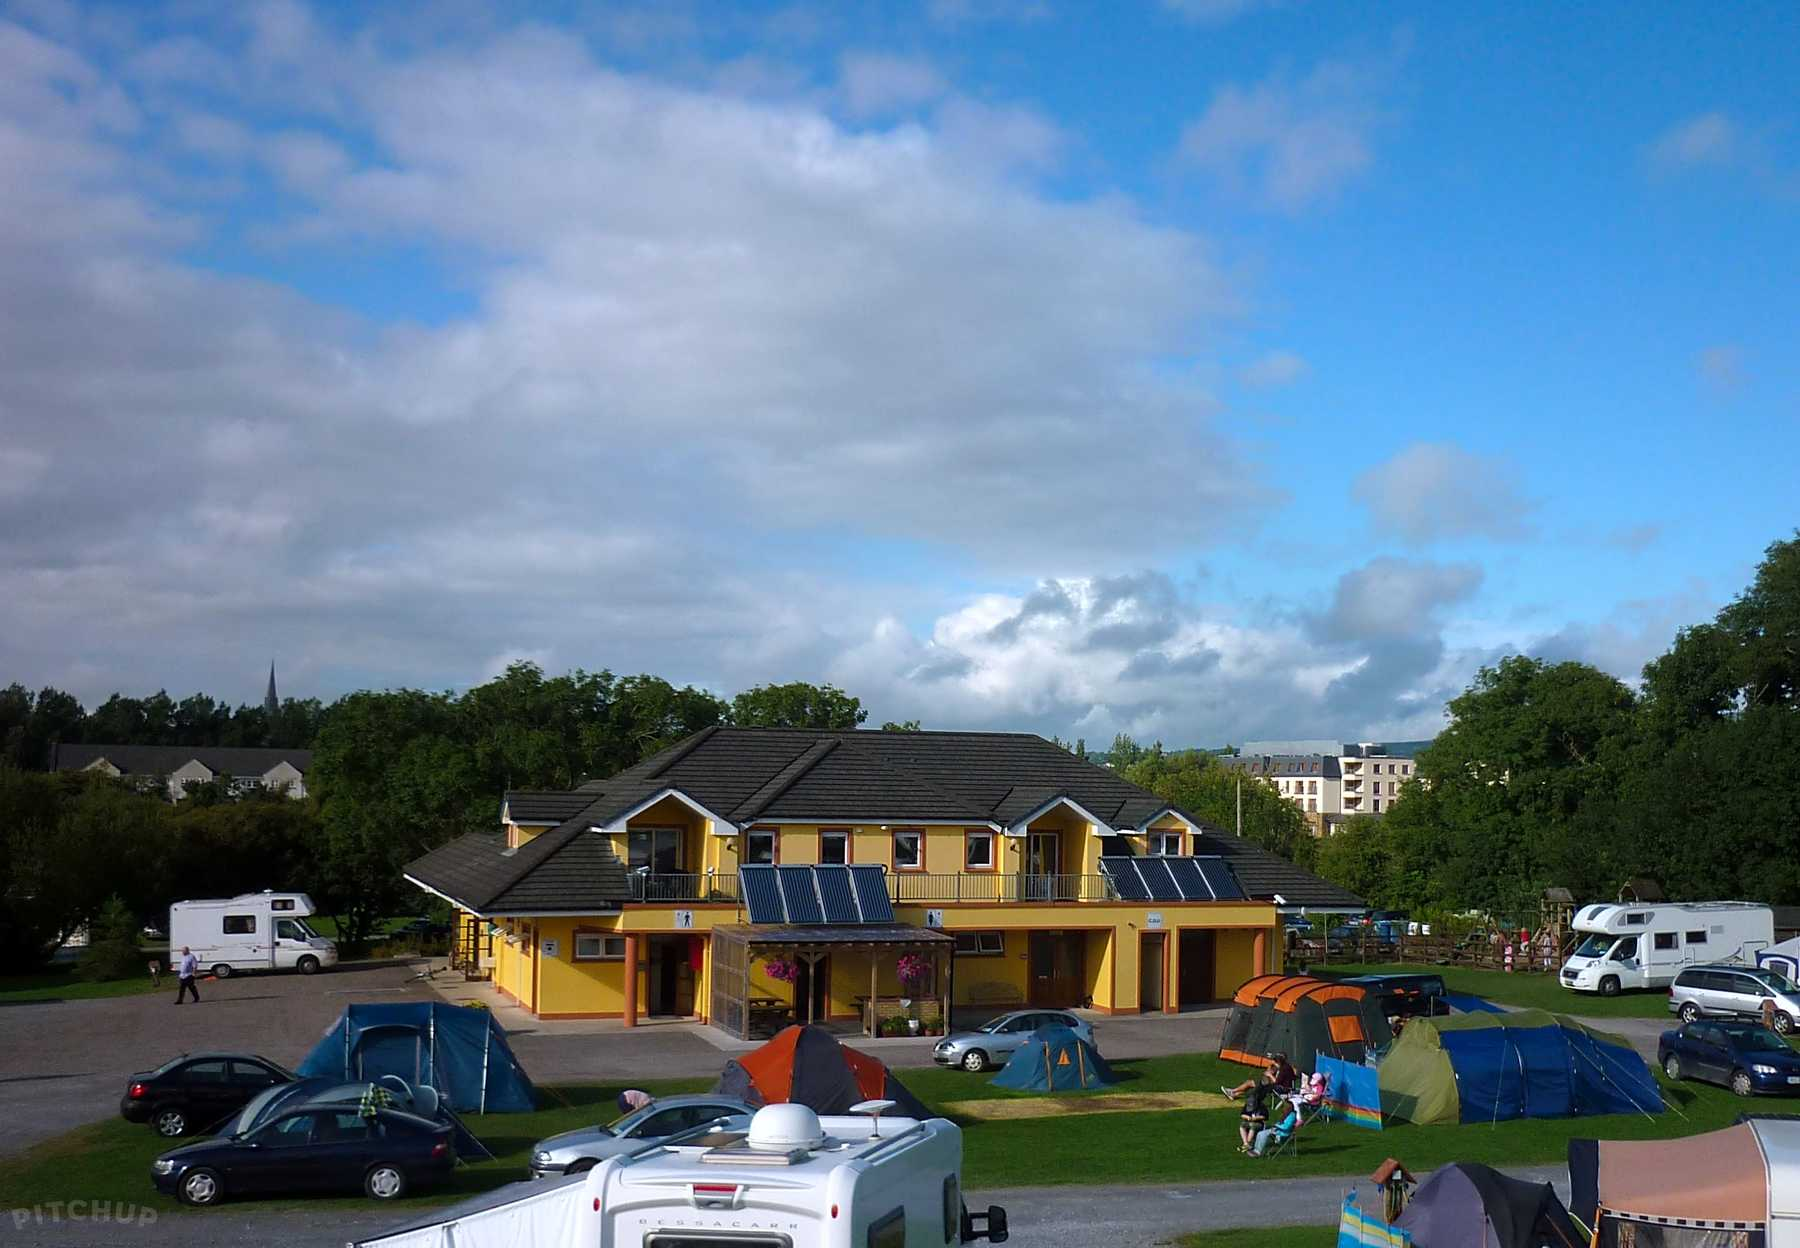 Listowel Arms Hotel   Accommodation   Hotels   Republic of